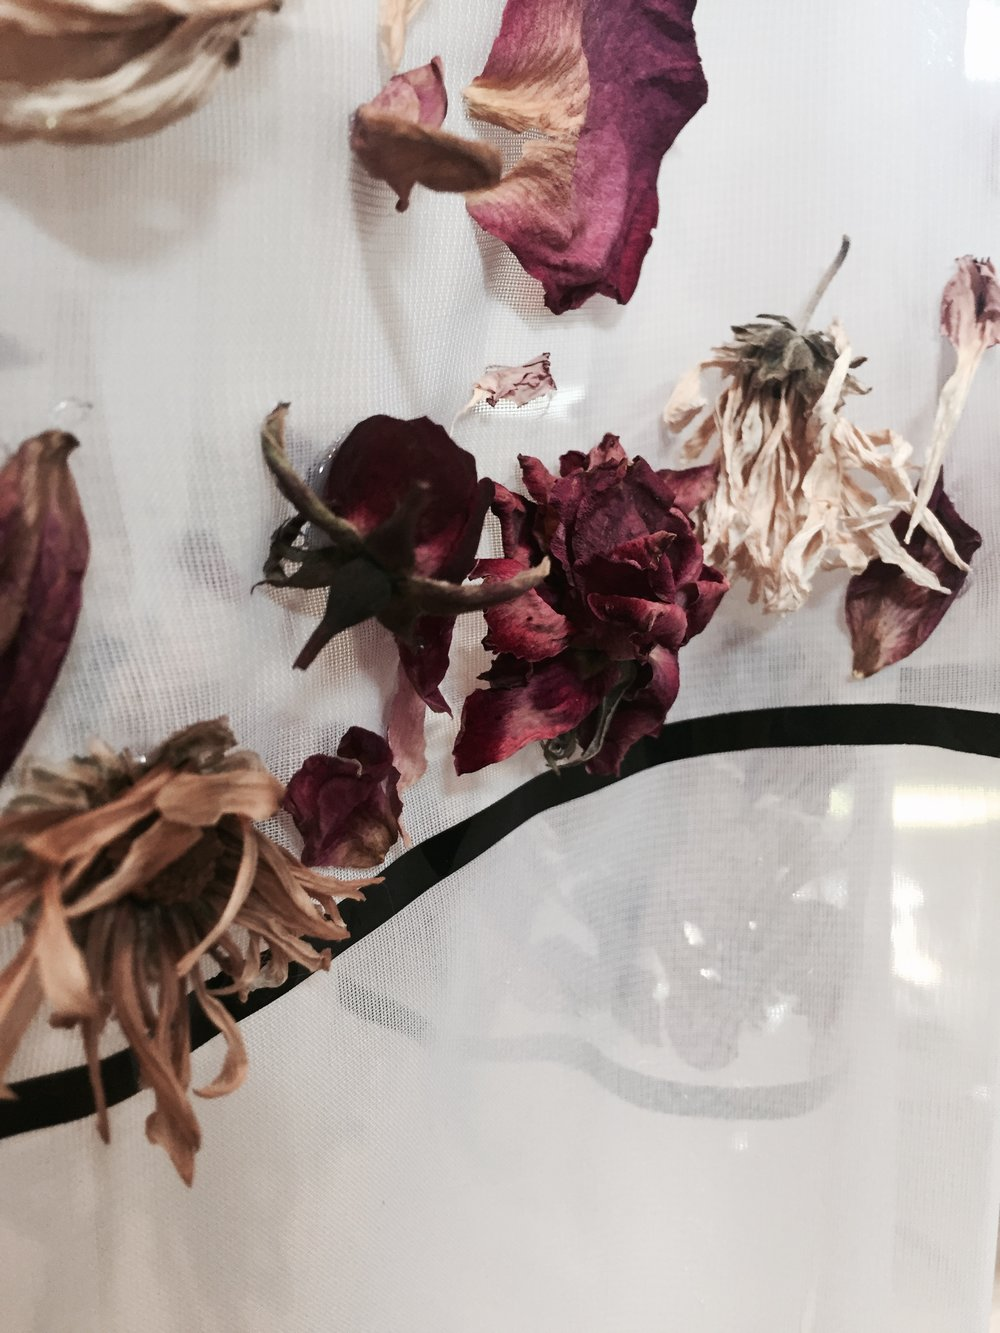 Dried flower detailing on a sheer skirt